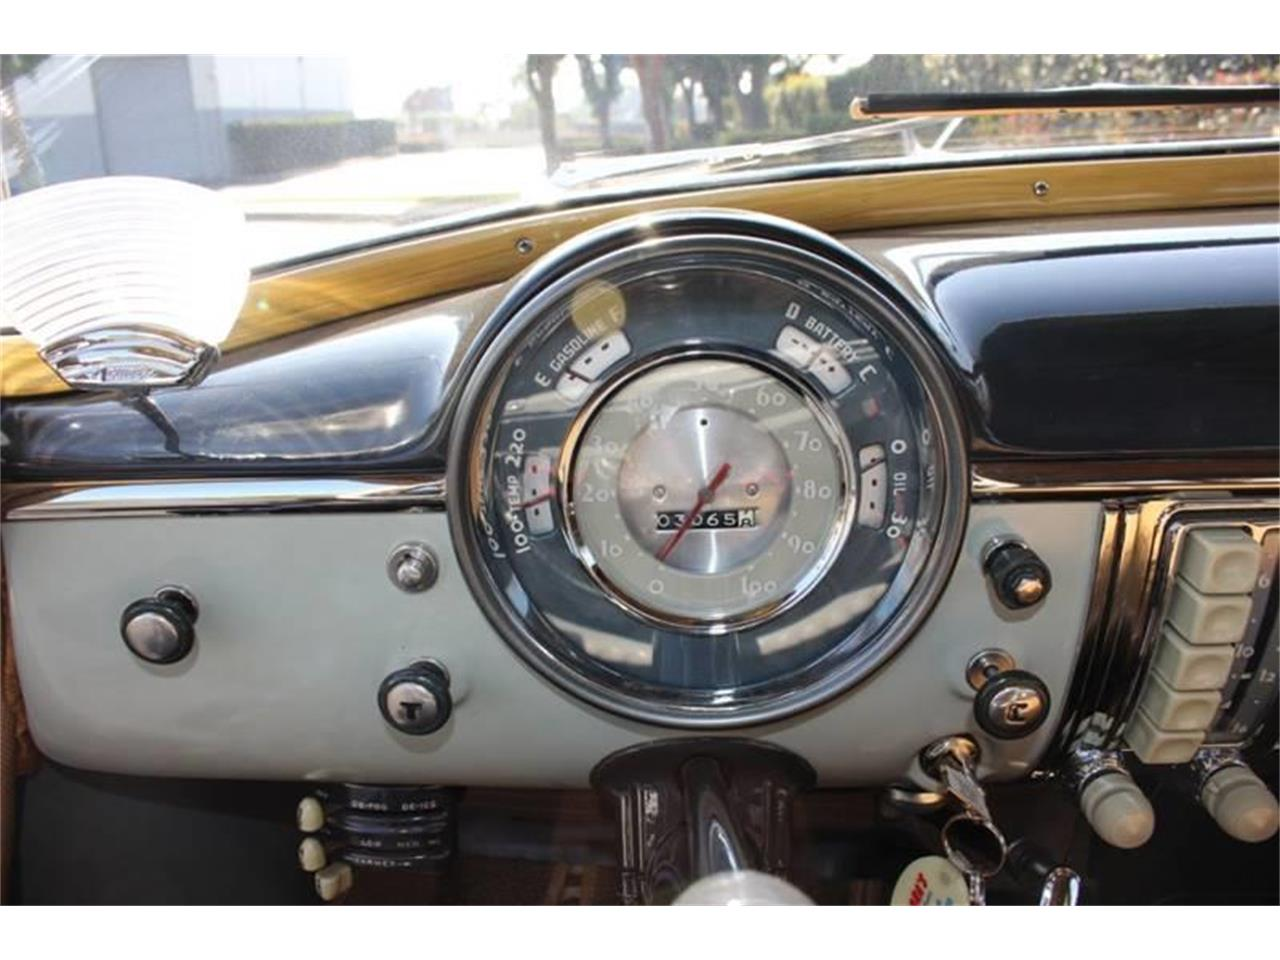 1950 Chevrolet Styleline Deluxe for sale in La Verne, CA – photo 28